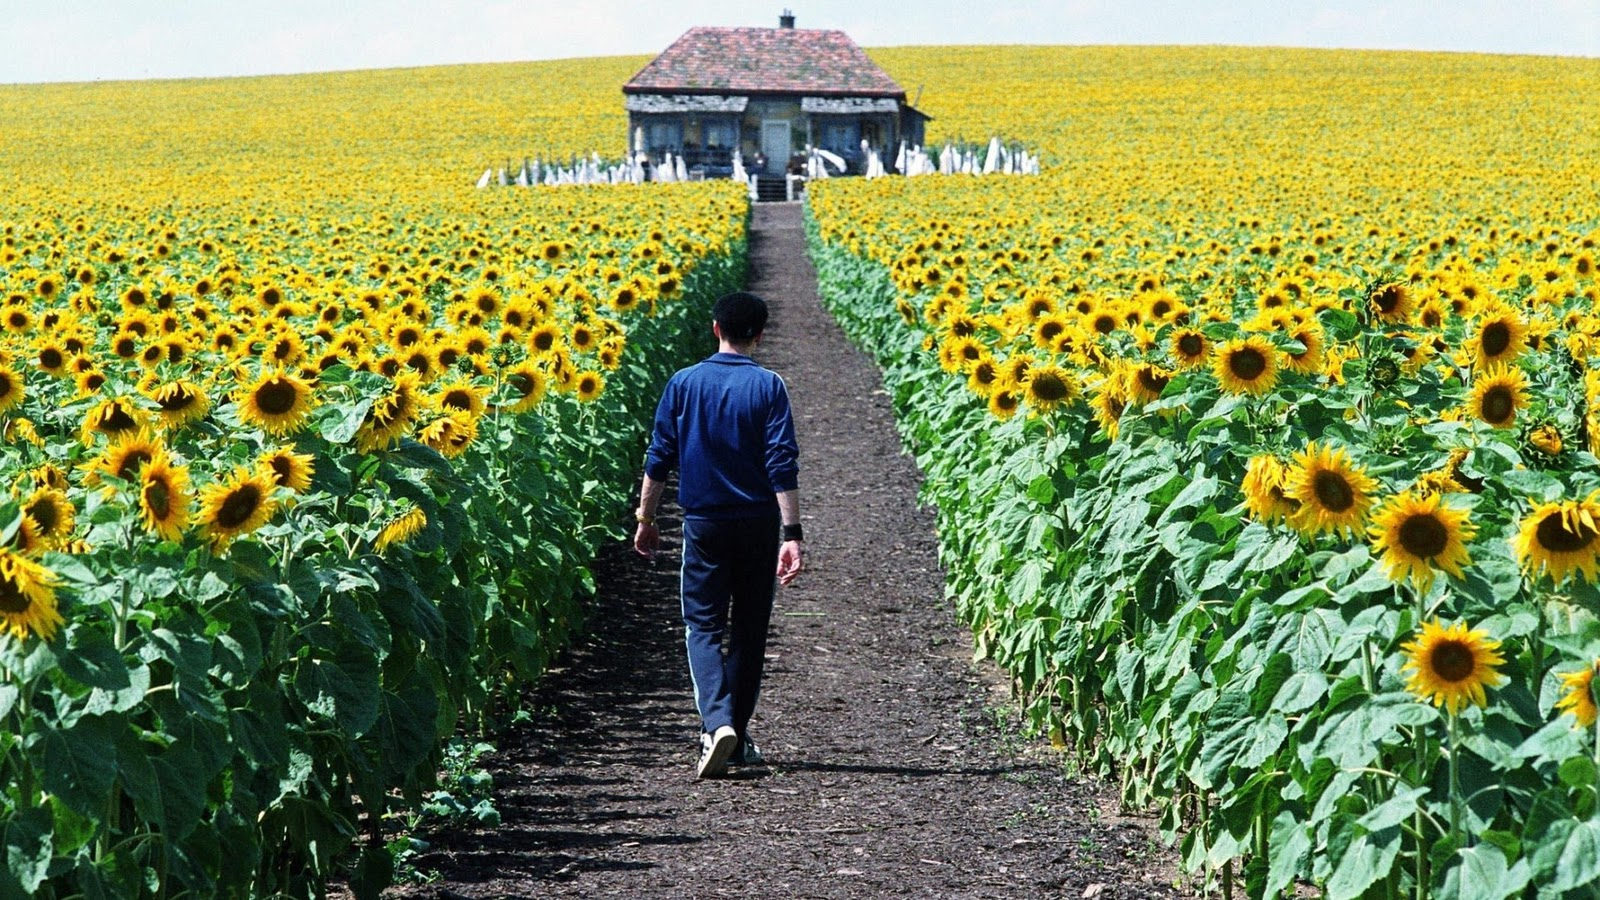 Everything is illuminated movie times